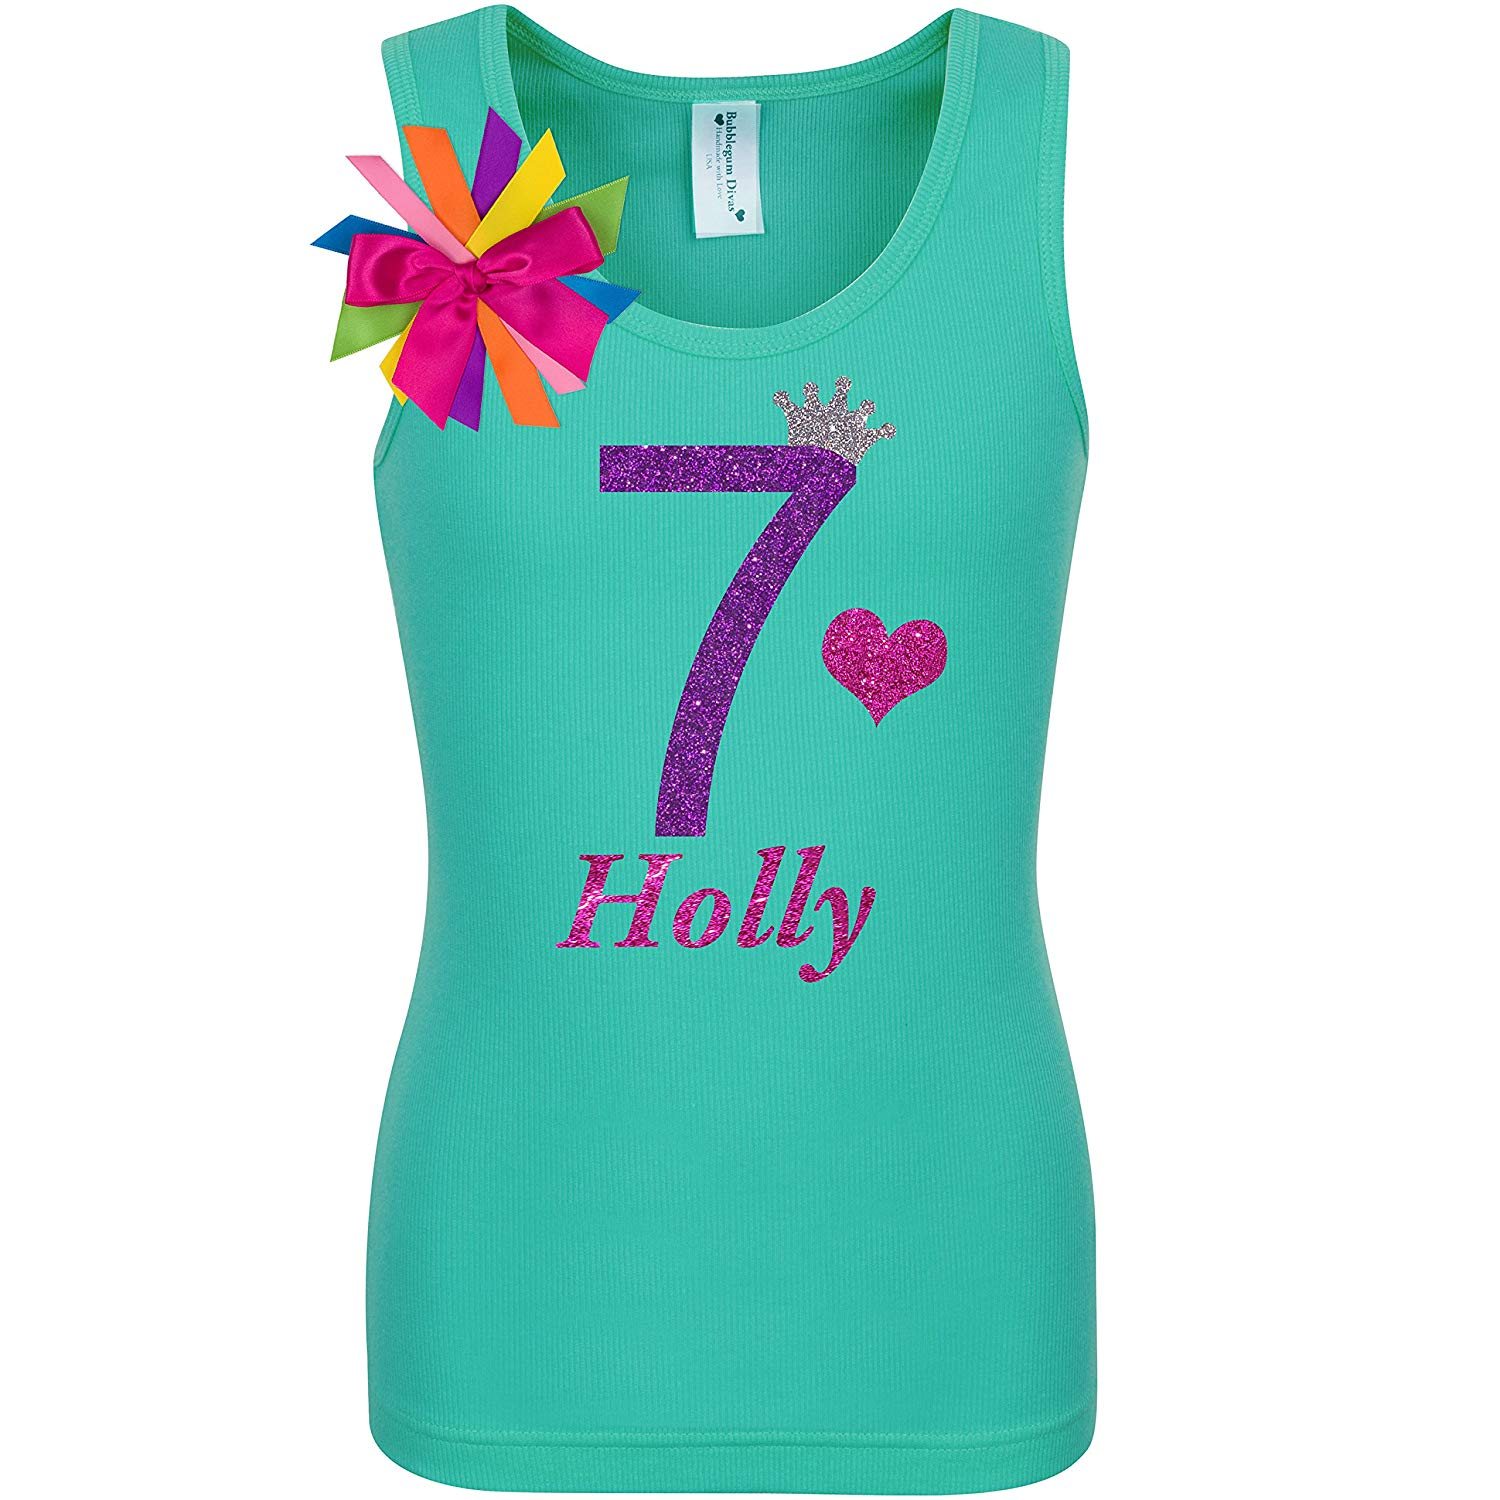 afe731d0e5fb Get Quotations · 7th Birthday Shirt Purple Glitter Seven Rainbow T-Shirt  Tank Top Custom Name Age 7